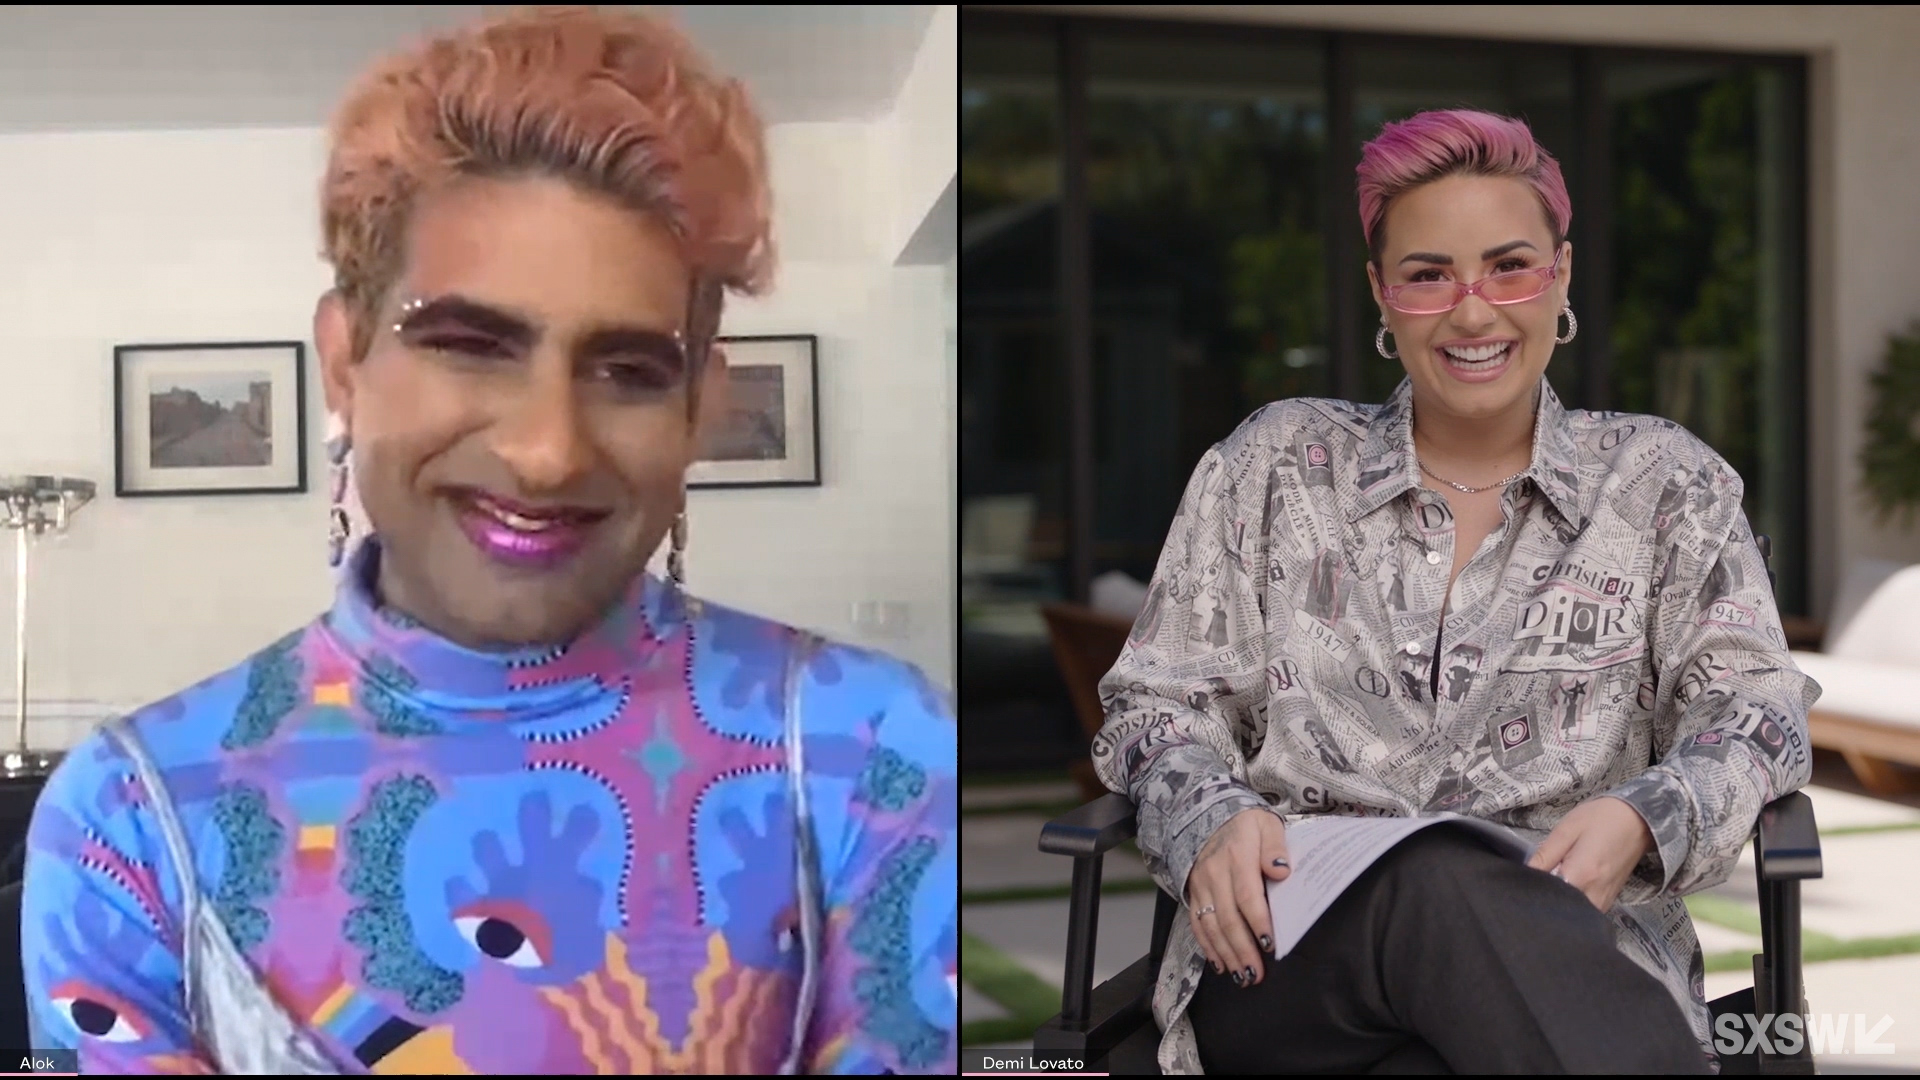 """Demi Lovato and Alok Vaid-Menon speak at the featured session """"Beyond the Gender Binary"""" during SXSW Online on March 19, 2021."""